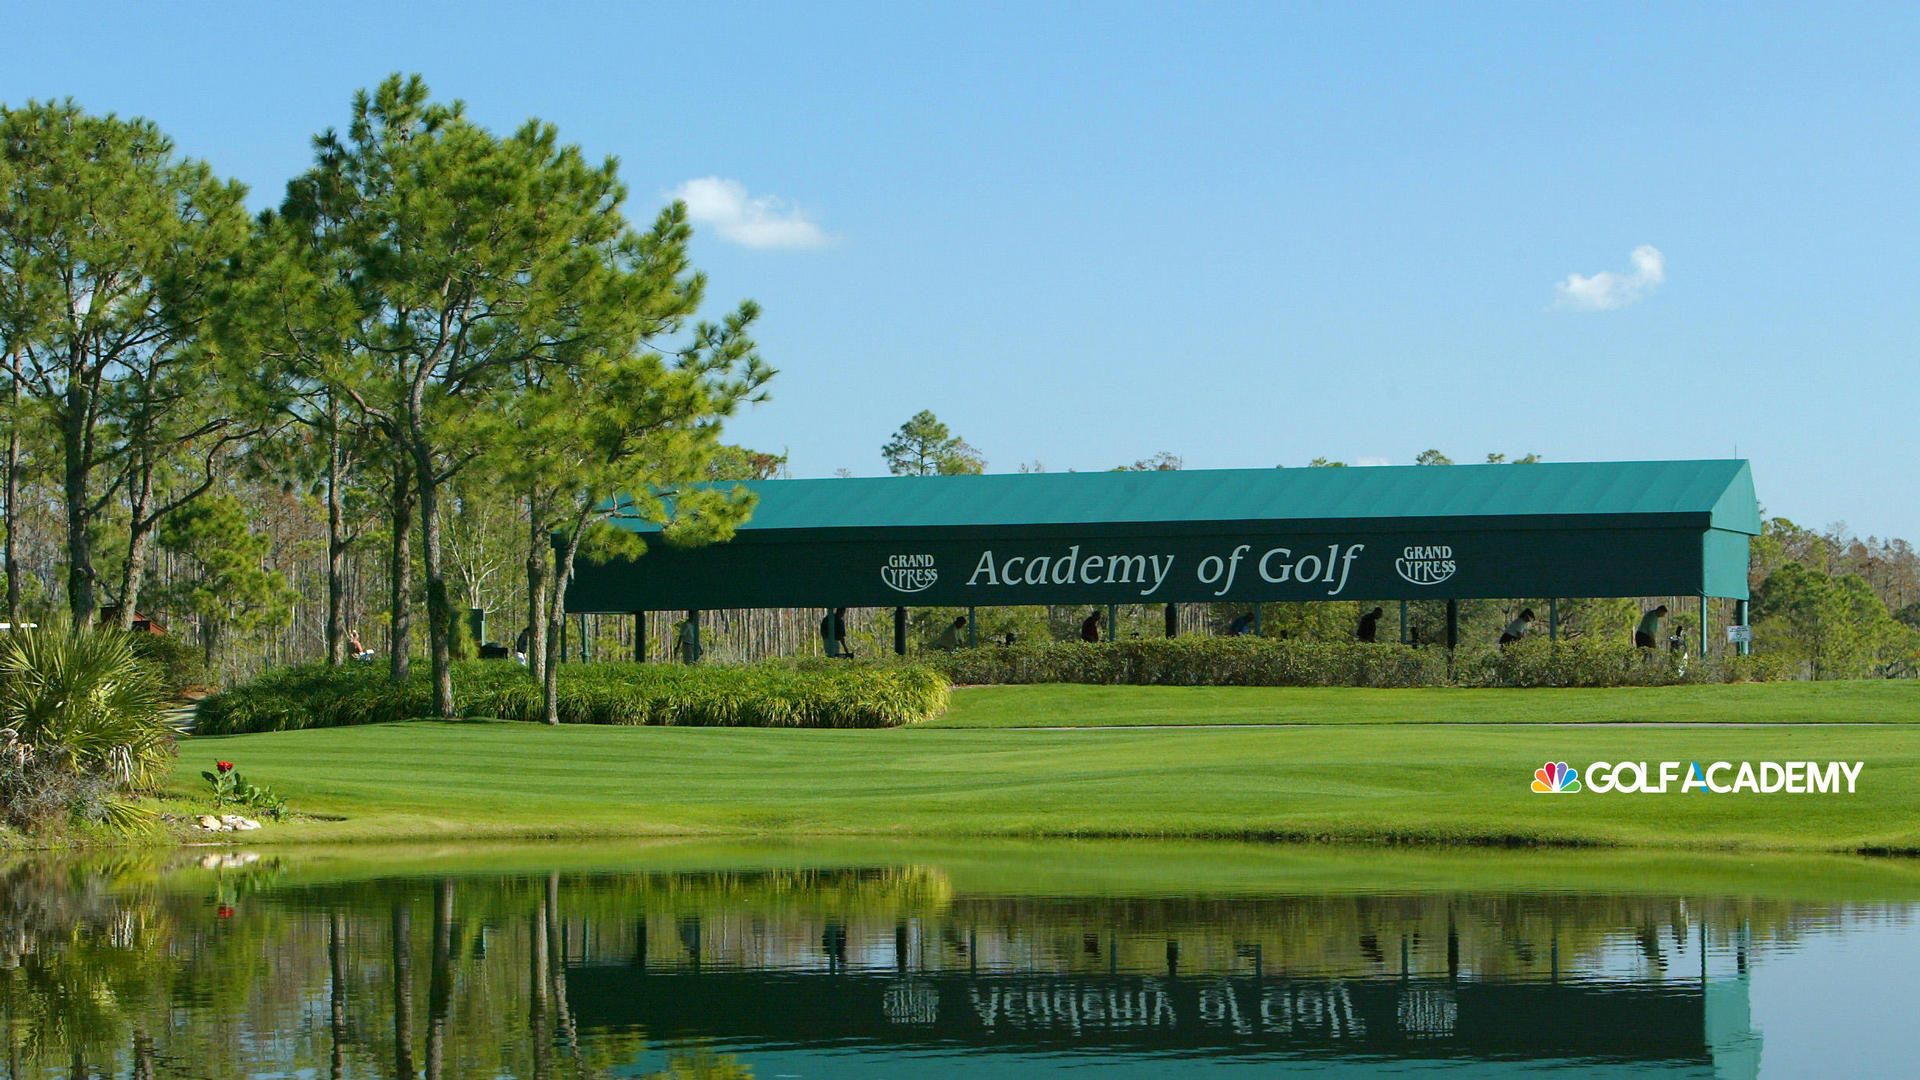 Villas of Grand Cypress Golf Academy sign in Orlando, FL